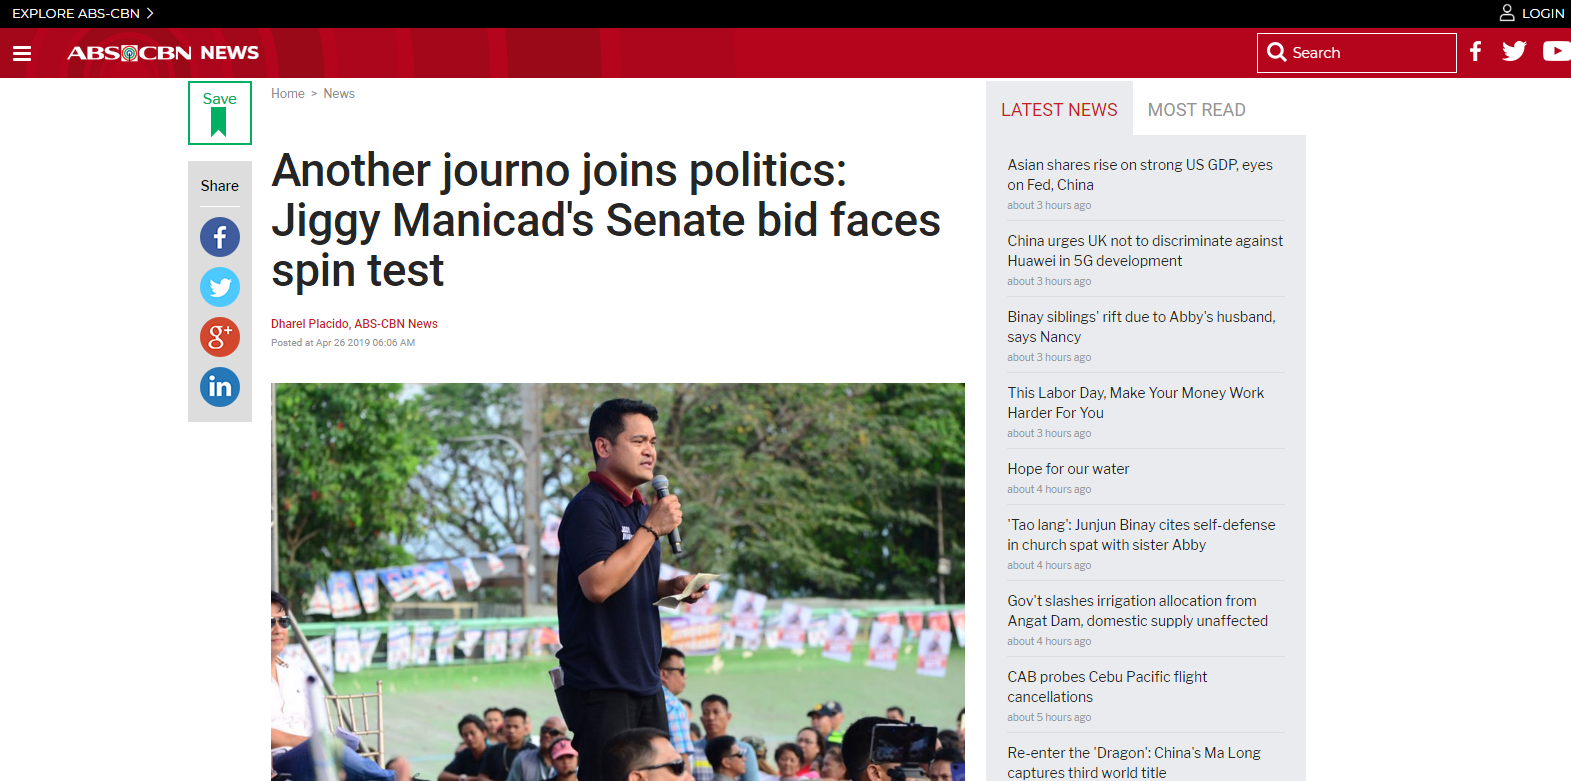 Another journo joins politics: Jiggy Manicad's Senate bid faces spin test